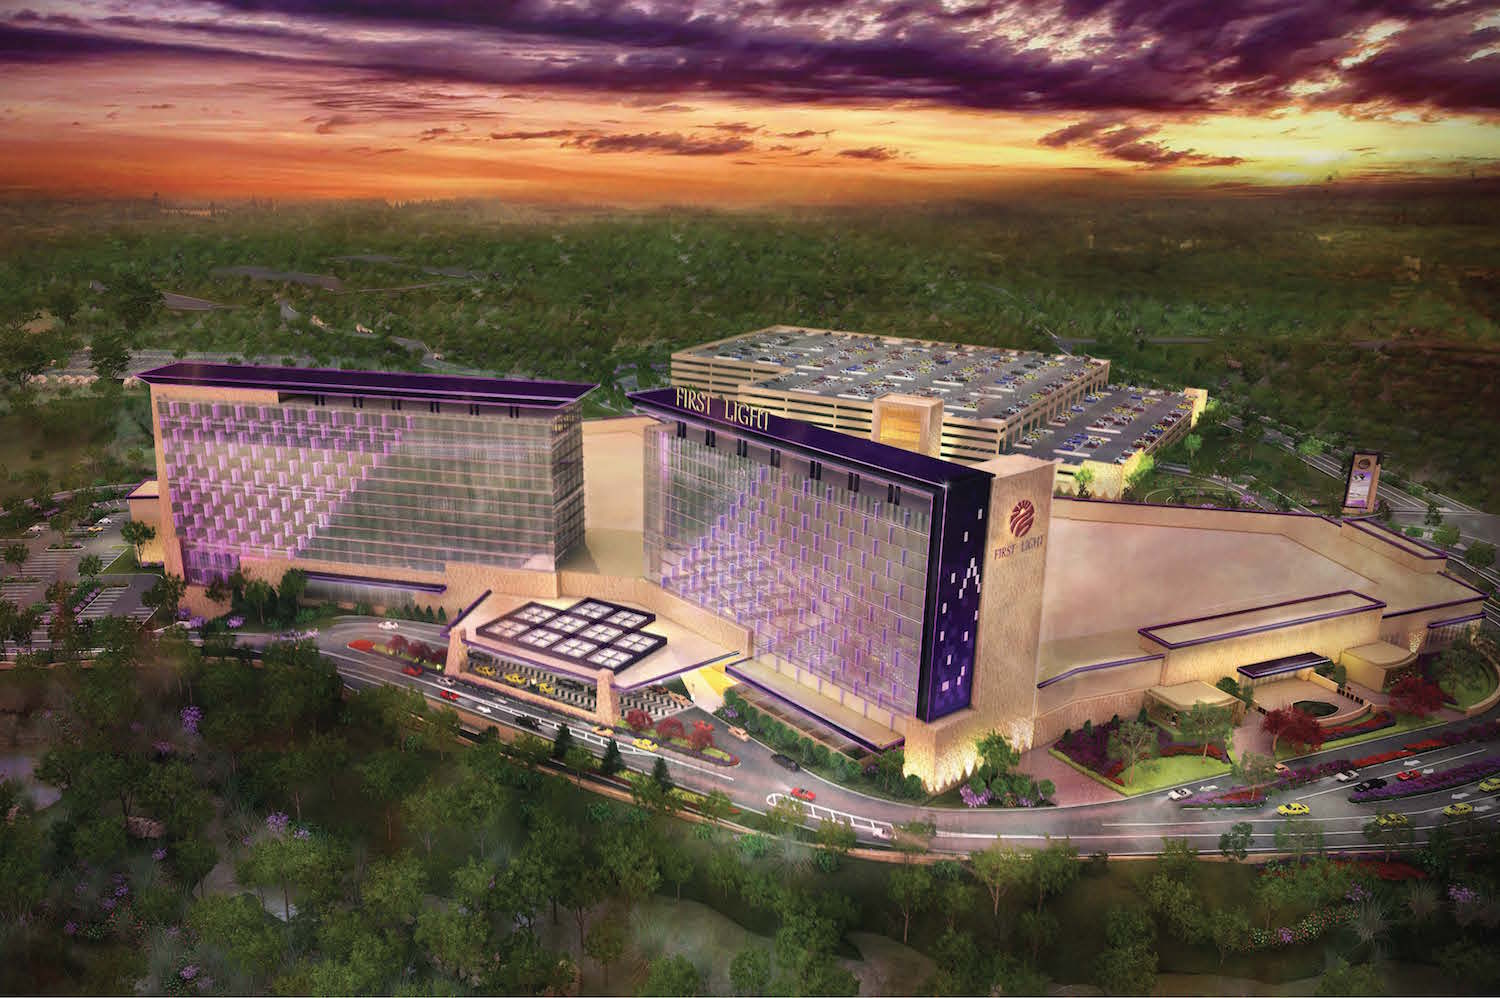 Rival casino opposed by Mashpee Wampanoag Tribe awaits fate